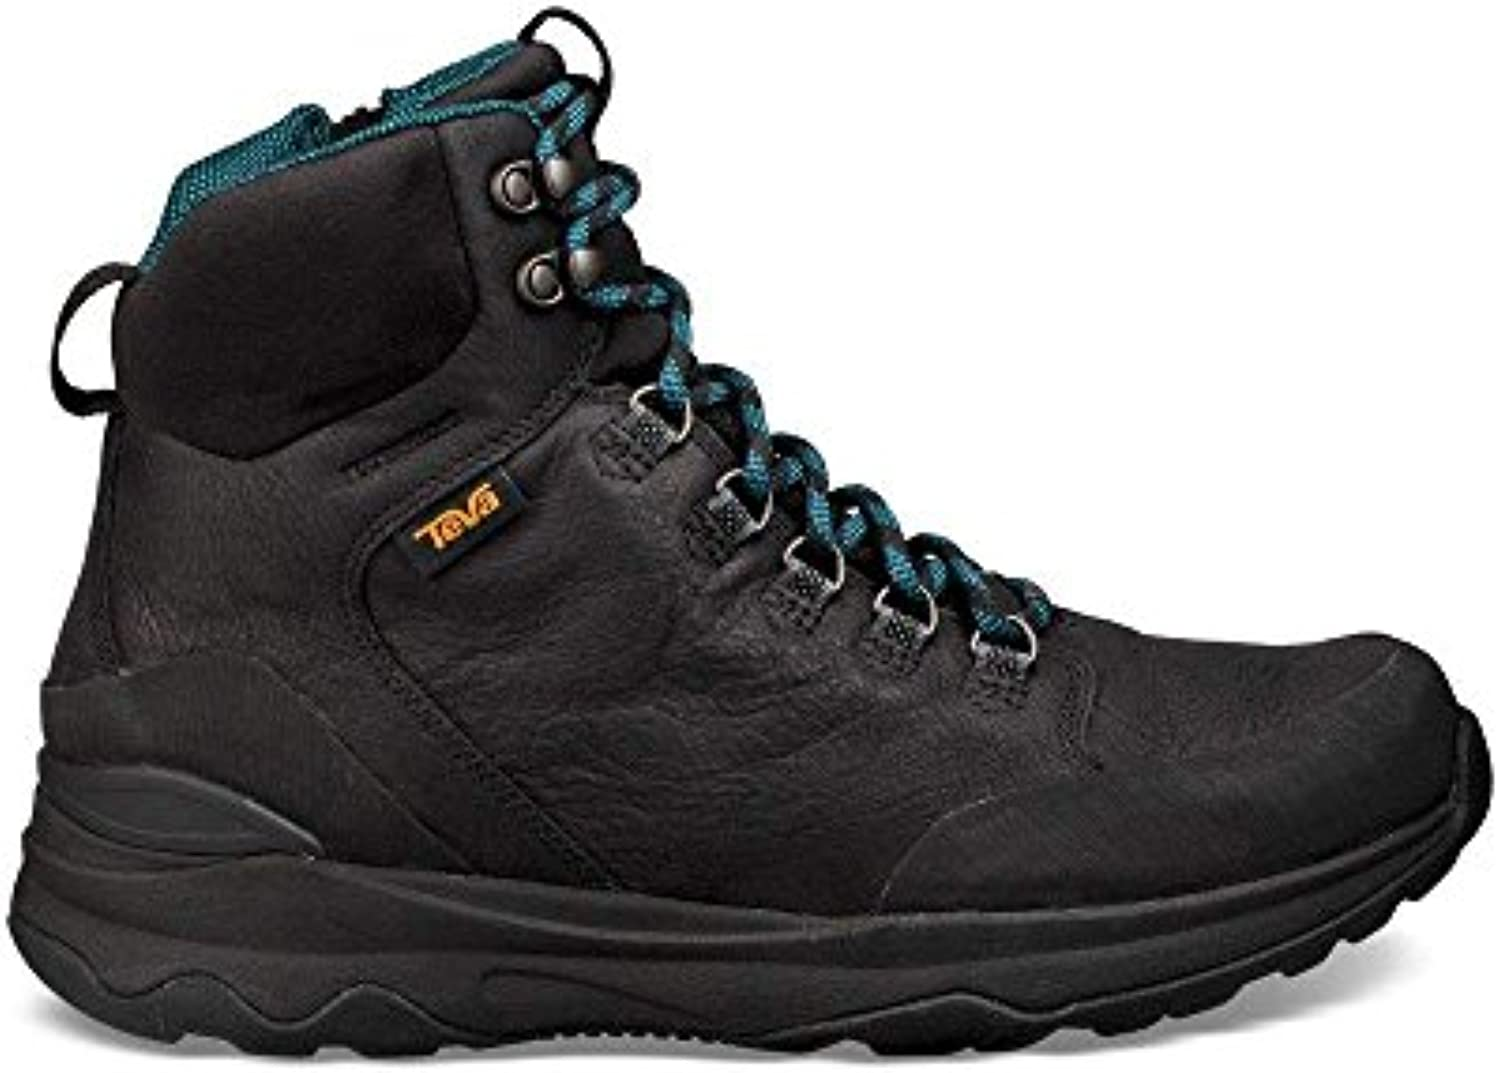 Teva Arrowood Utility Tall Tall Tall avvio Men's Hiking 8 nero | Conveniente